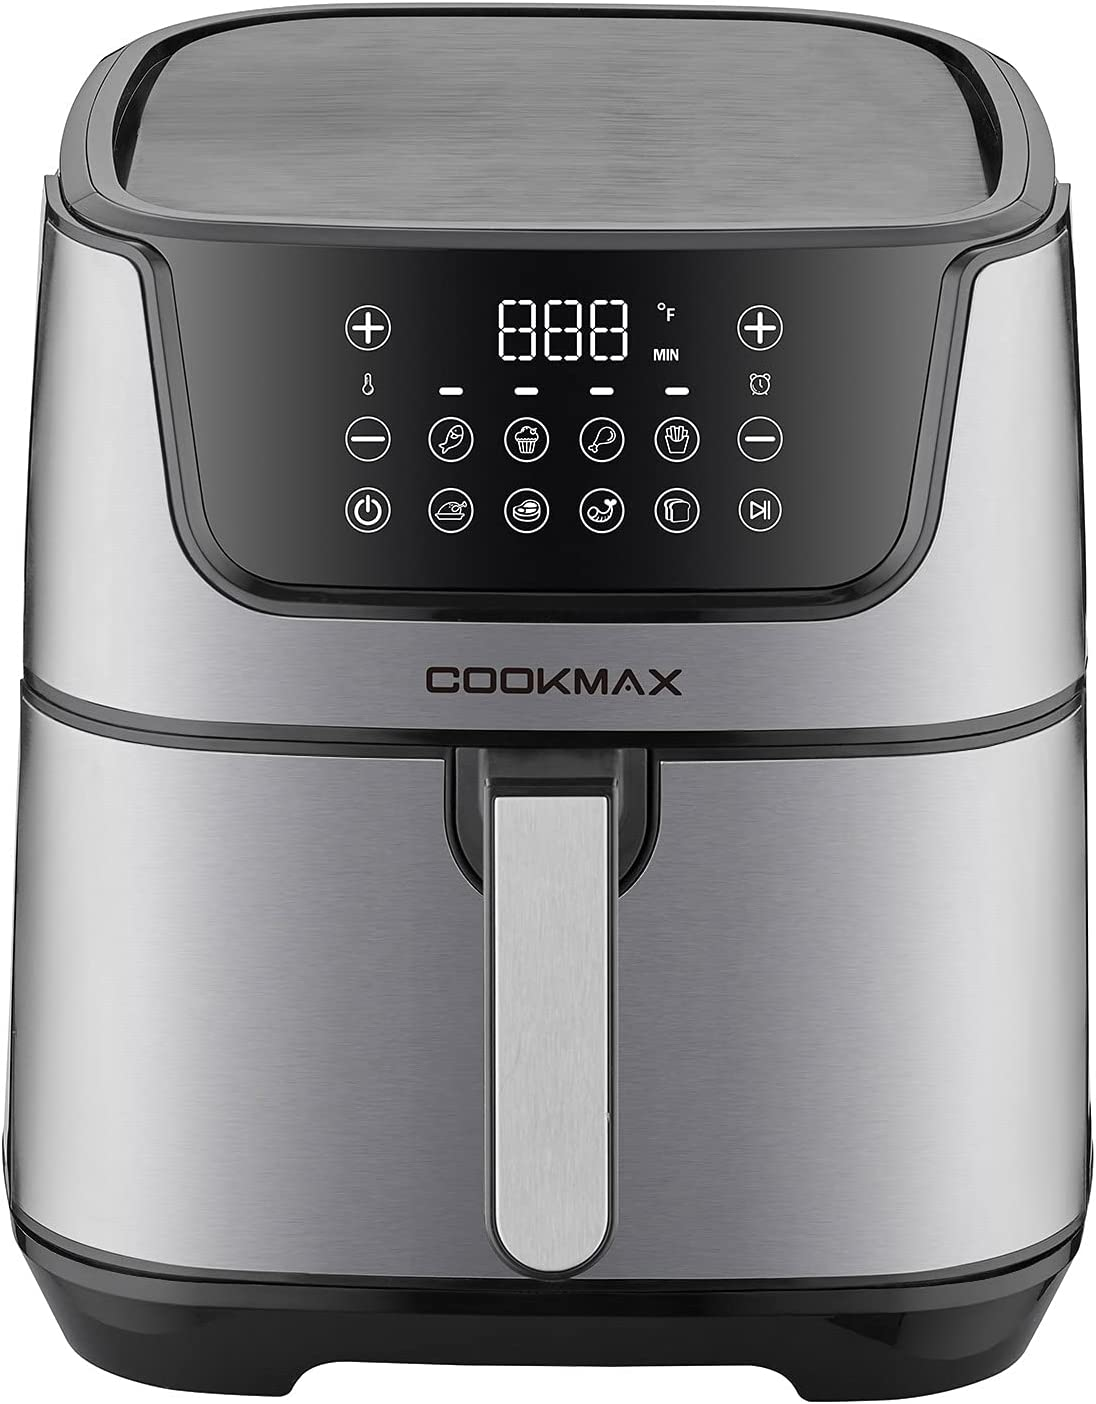 CookMax Large Air Fryer 6.8Quart with 8 Cooking Presets, Stainless Steel, Nonstick Basket UL Certified